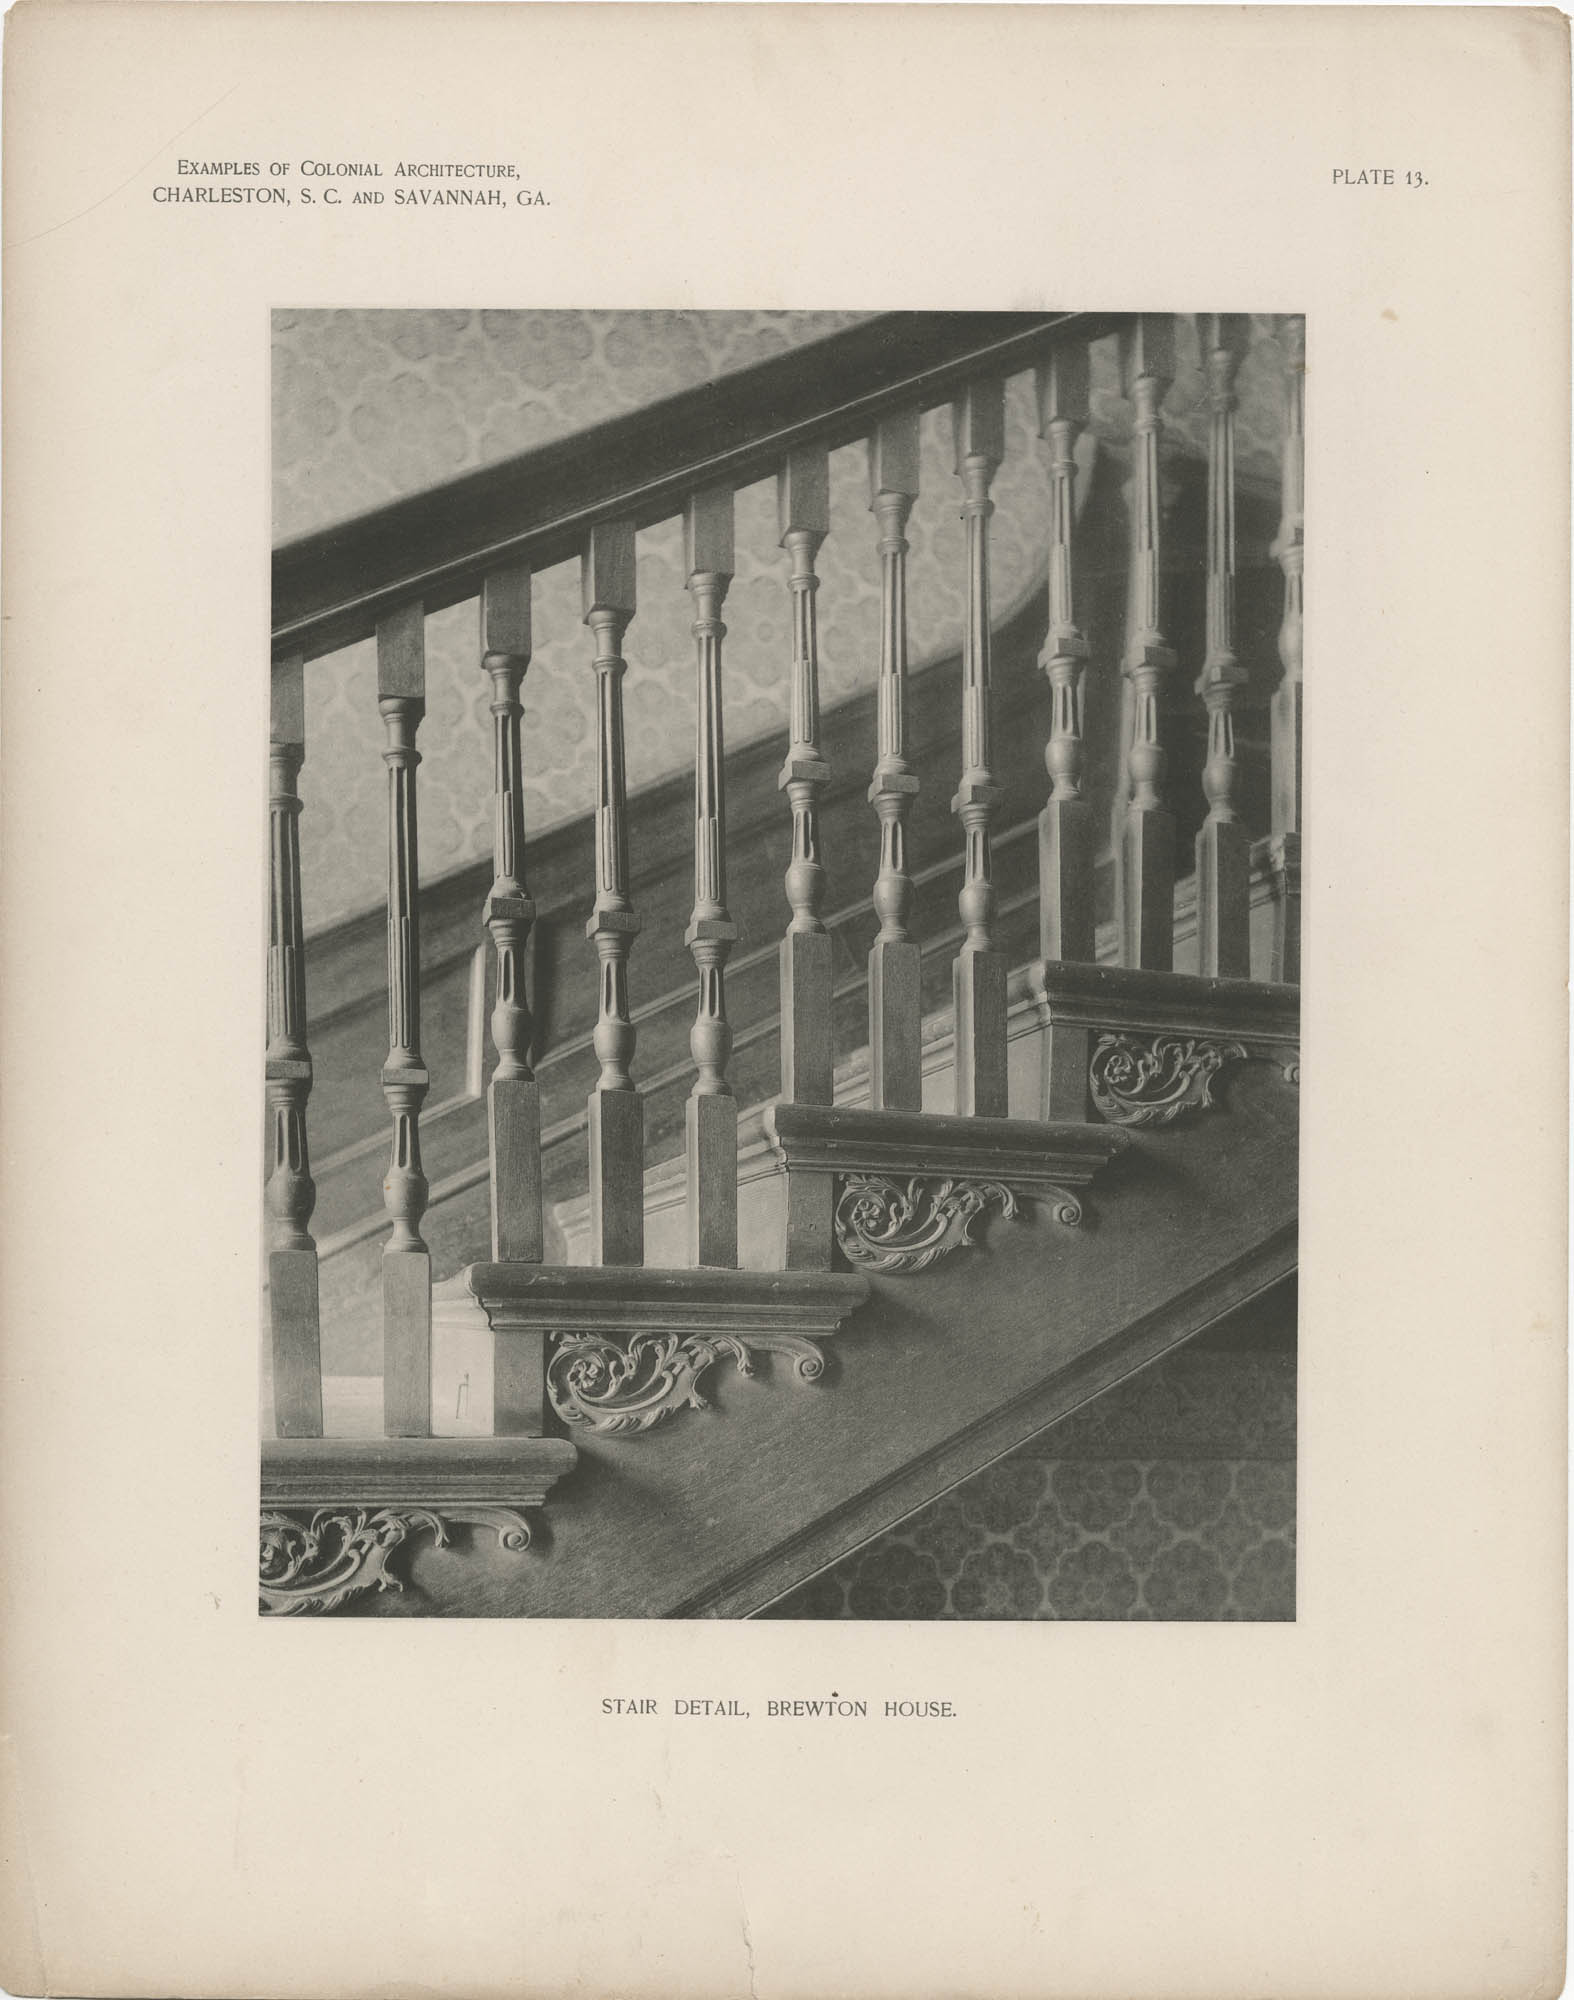 Plate 13: Stair Detail, Brewton House